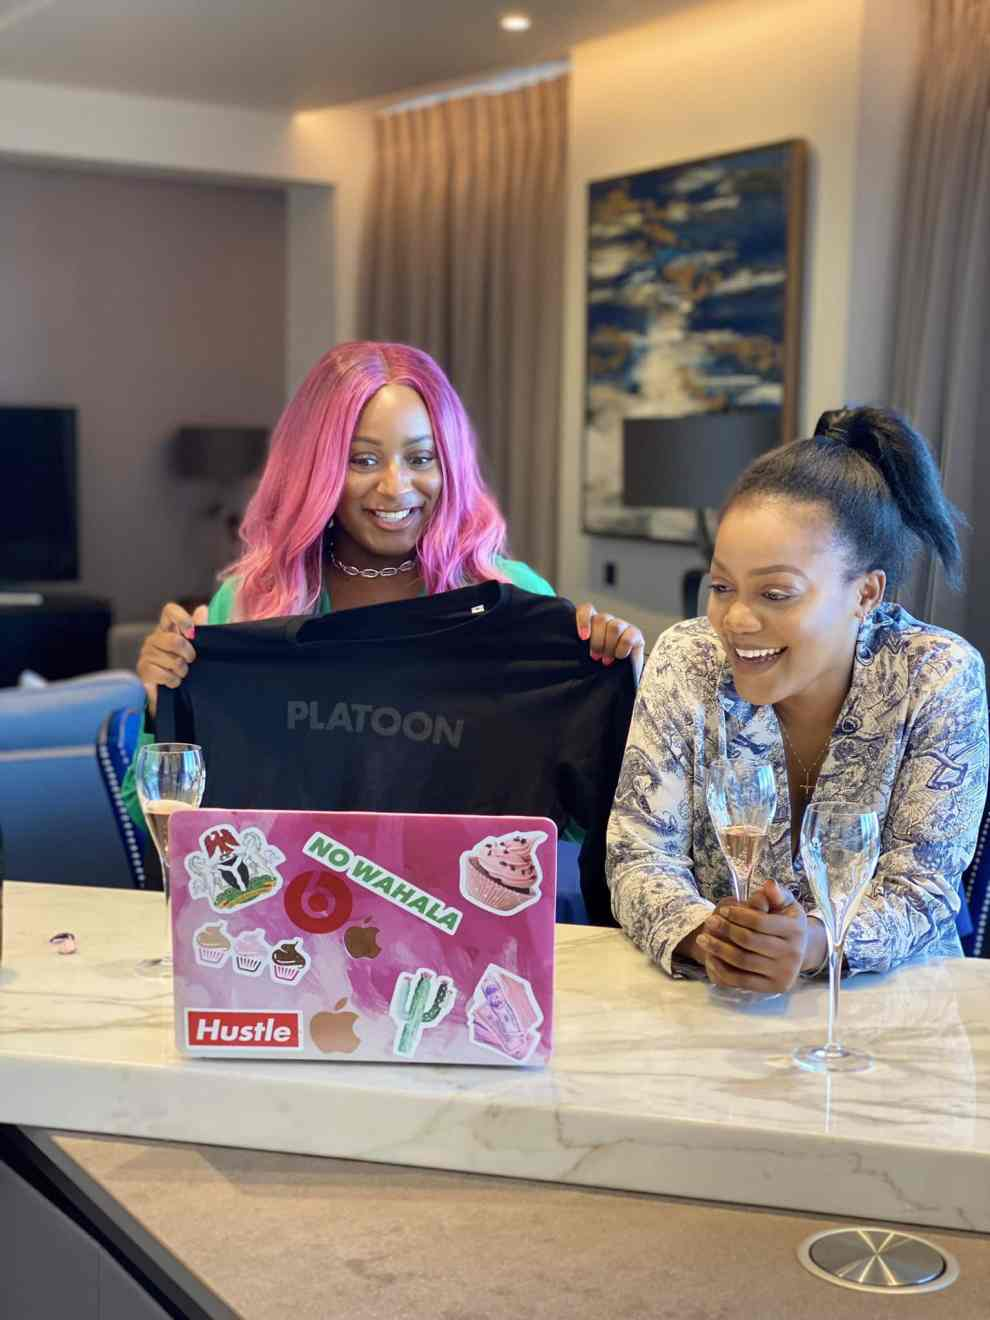 DJ Cuppy signs music deal with Platoon